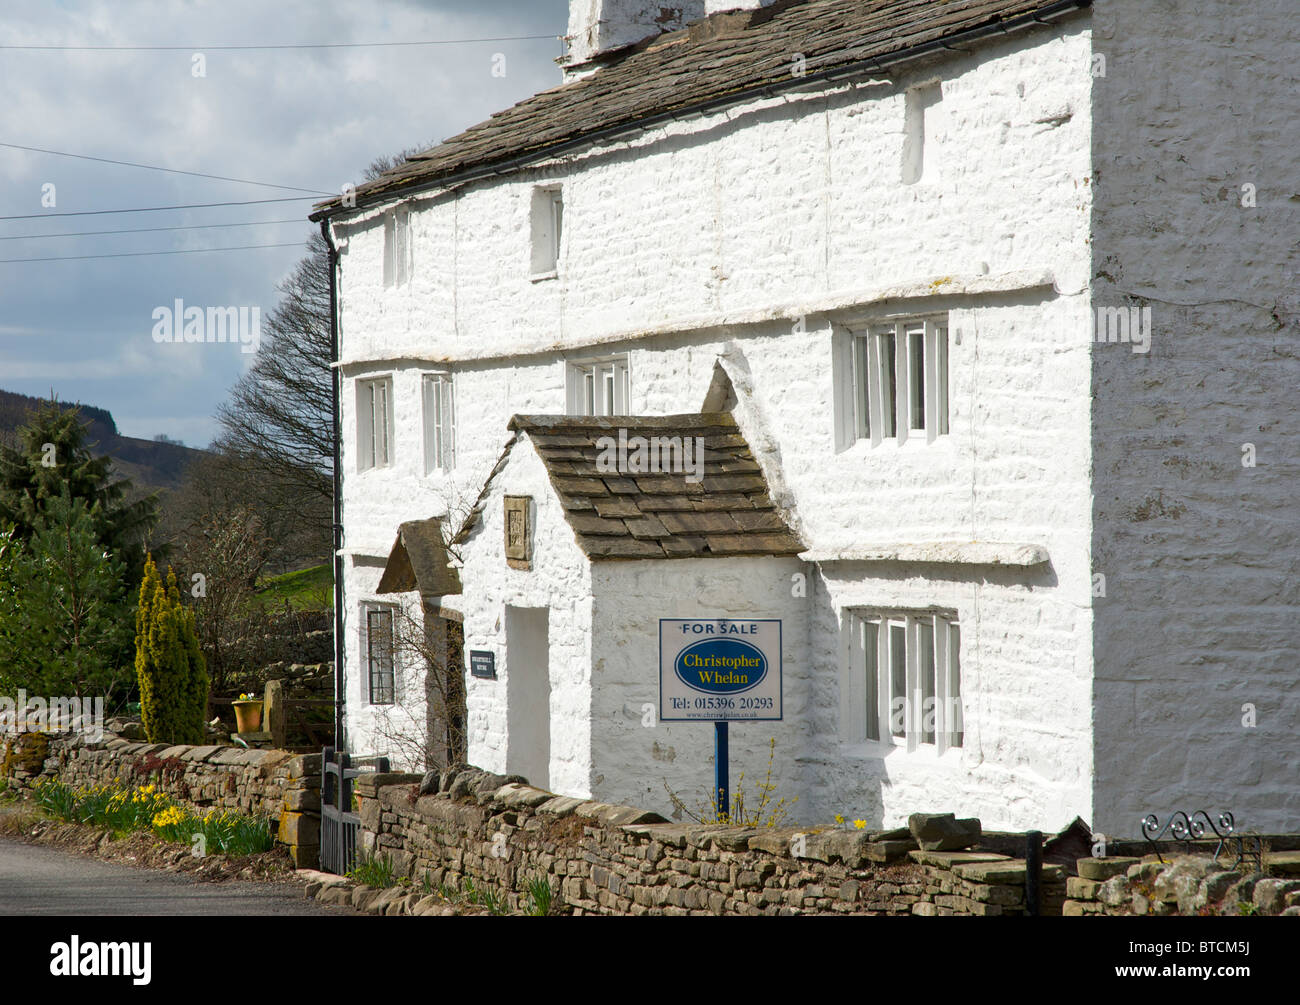 Whitewashed cottage for sale in Garsdale, Yorkshire Dales National Park, England UK, with a datestone of 1746 above - Stock Image